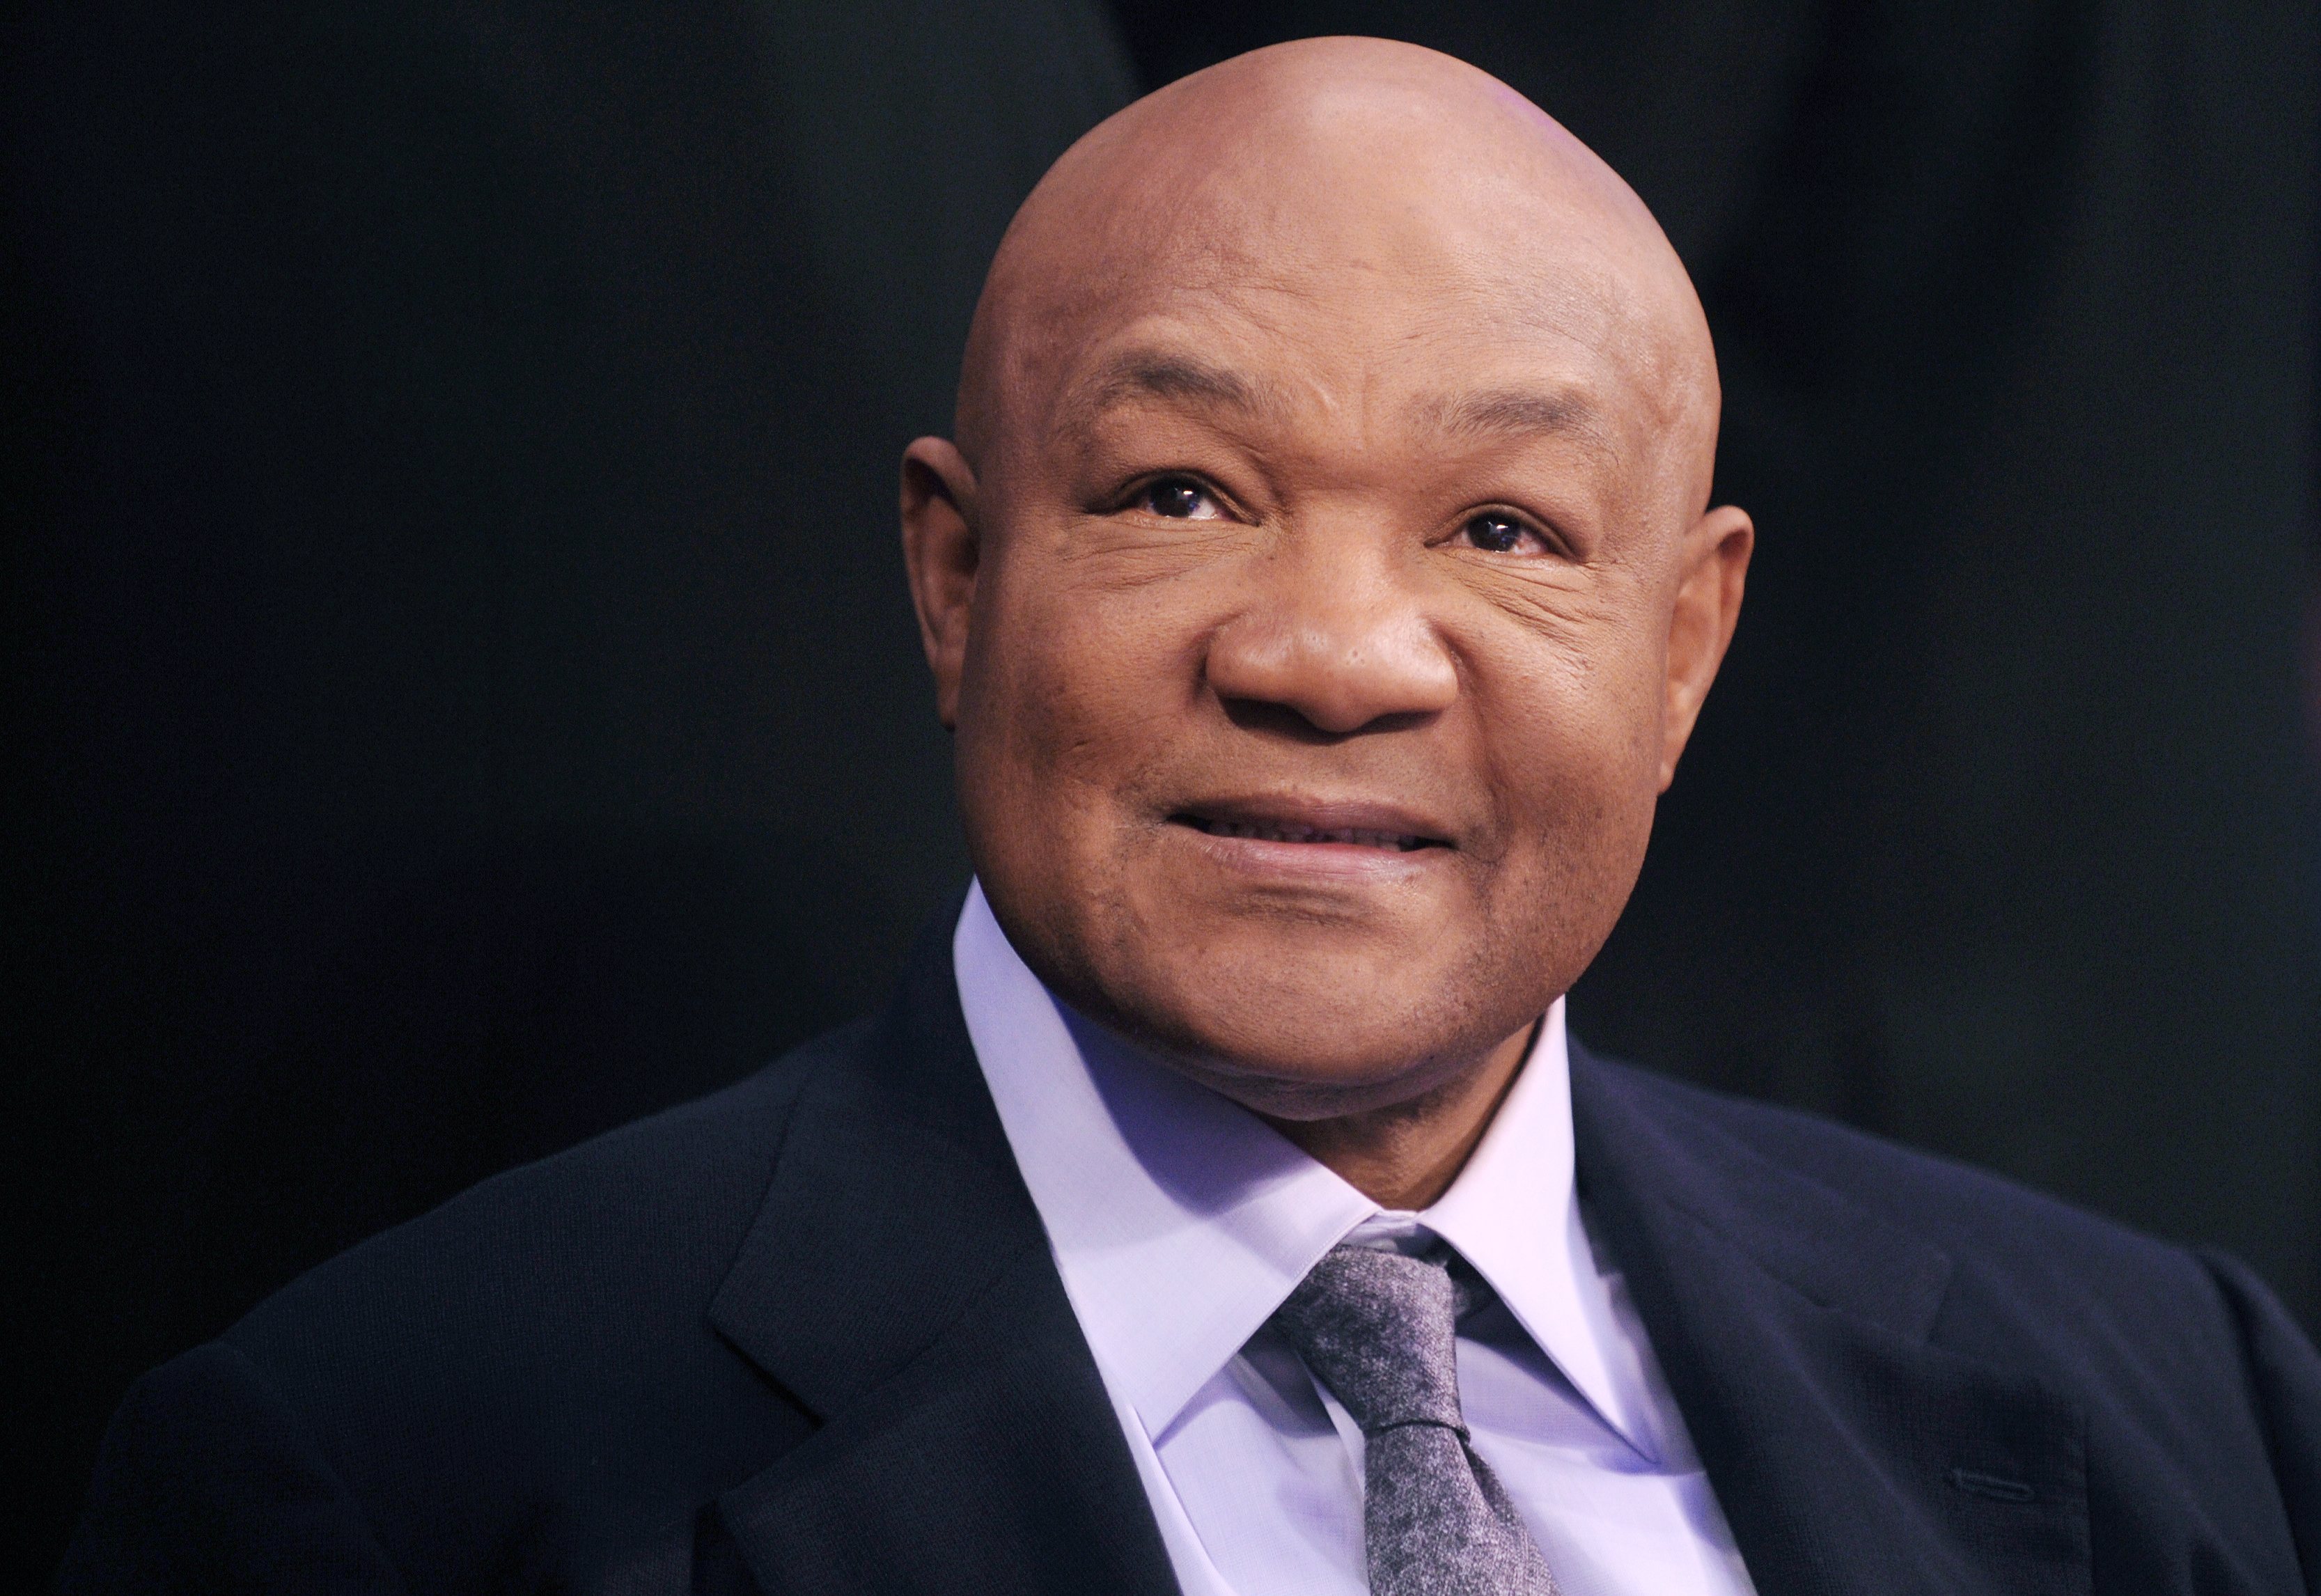 George Foreman praises Trump, suggests Kevin Durant and Colin Kaepernick are unpatriotic